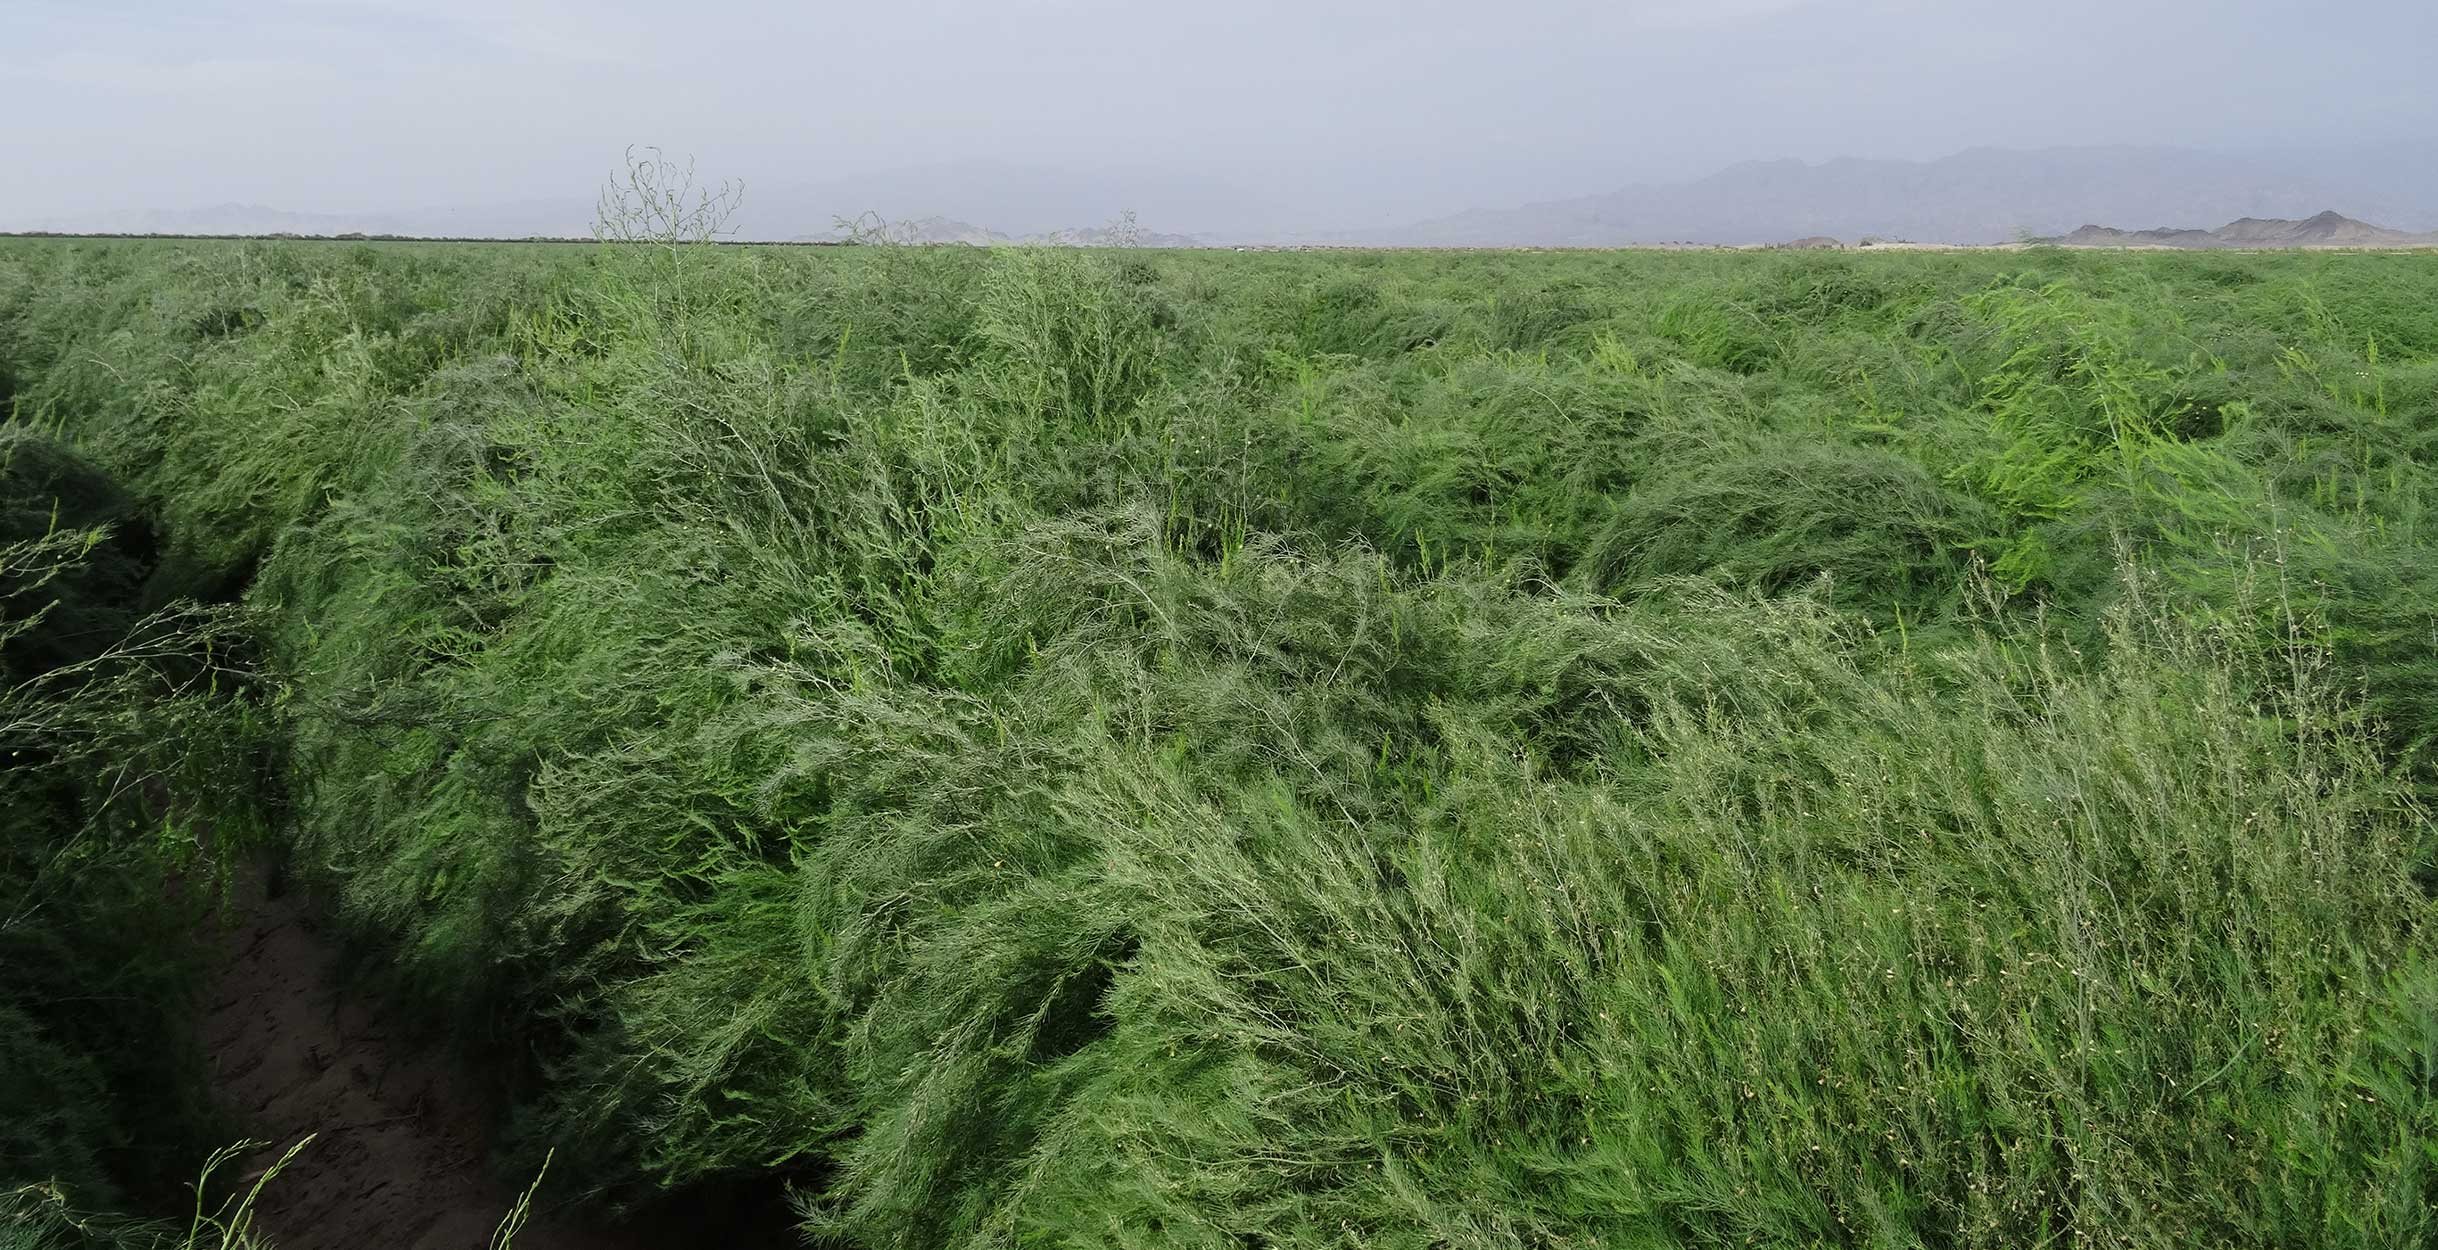 Photograph of a field of Asparagus growing on the Barfoots Nazca farm in Peru